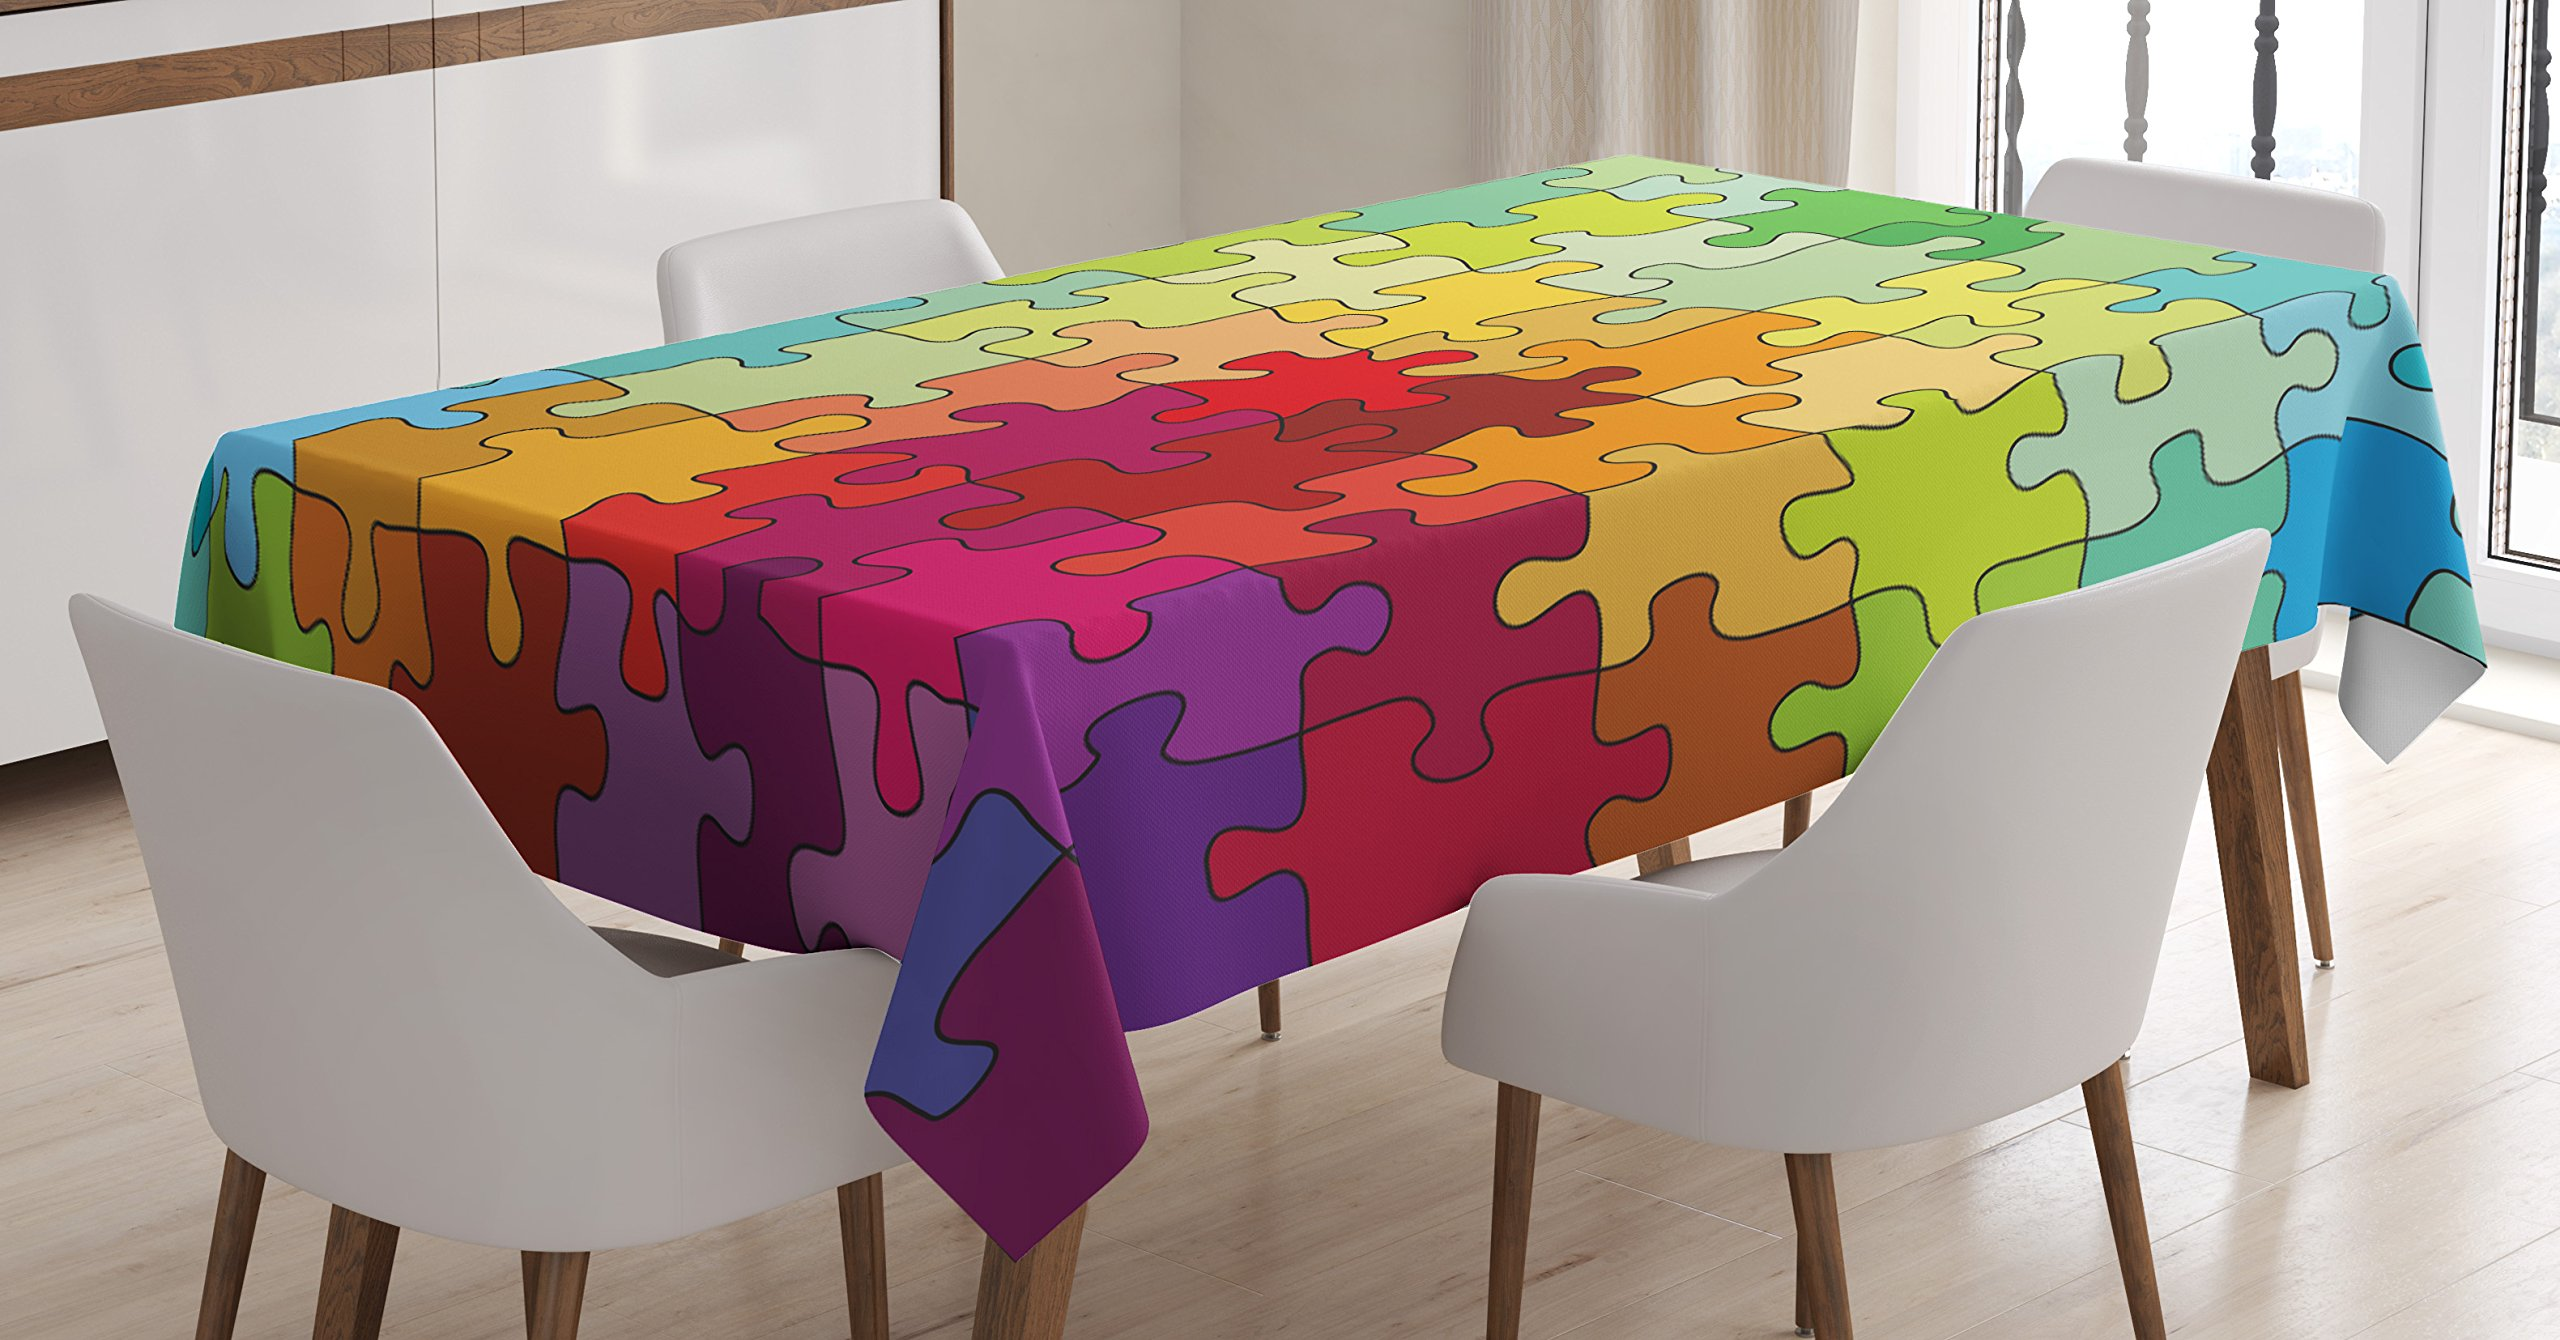 Ambesonne Abstract Tablecloth, Colorful Puzzle Pieces Fractal Children Hobby Activity Leisure Toys Cartoon Image, Dining Room Kitchen Rectangular Table Cover, 60 X 84 inches, Multicolor